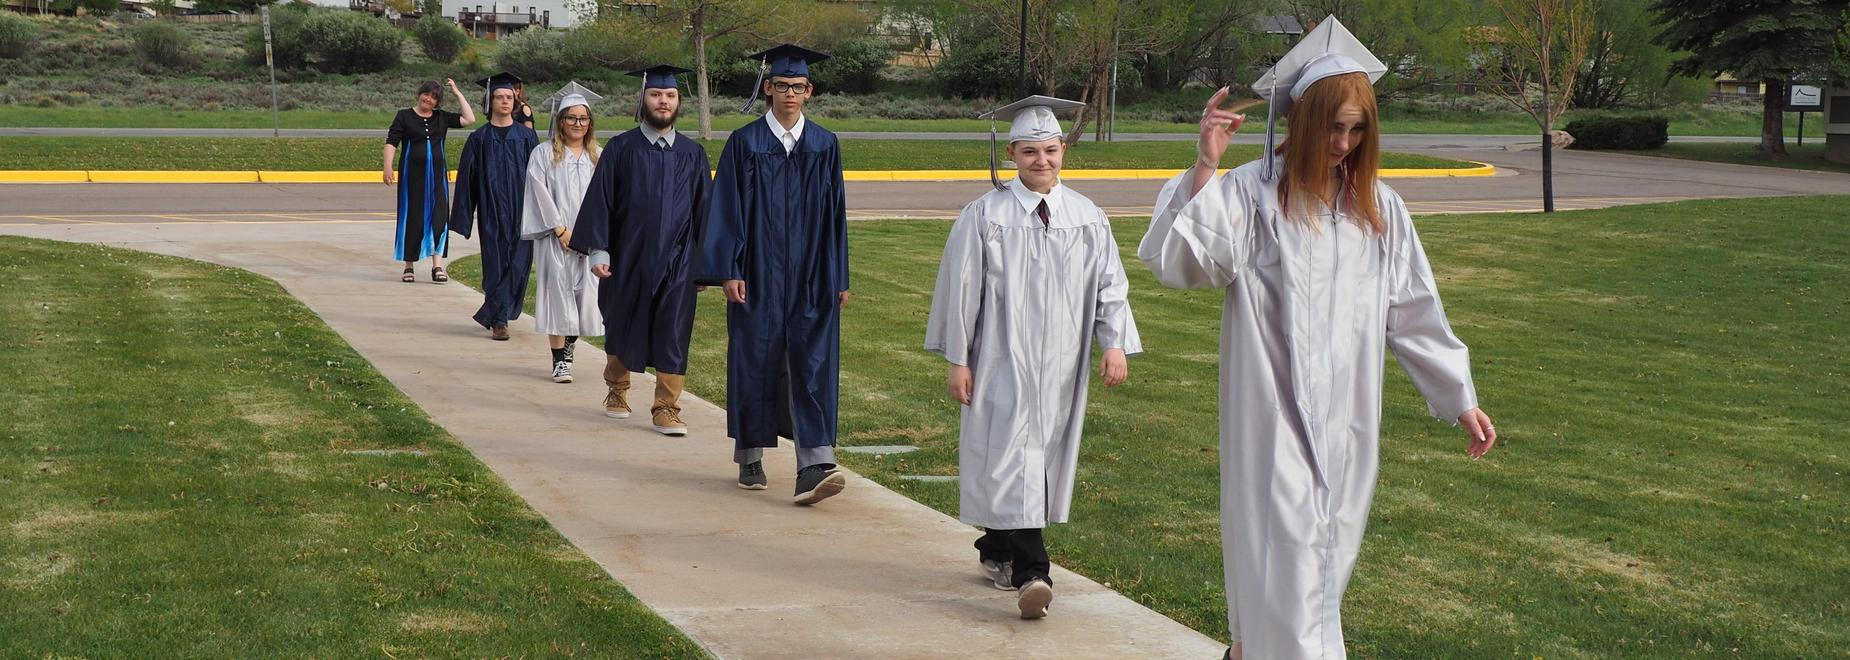 Graduates walking on Sidewalk